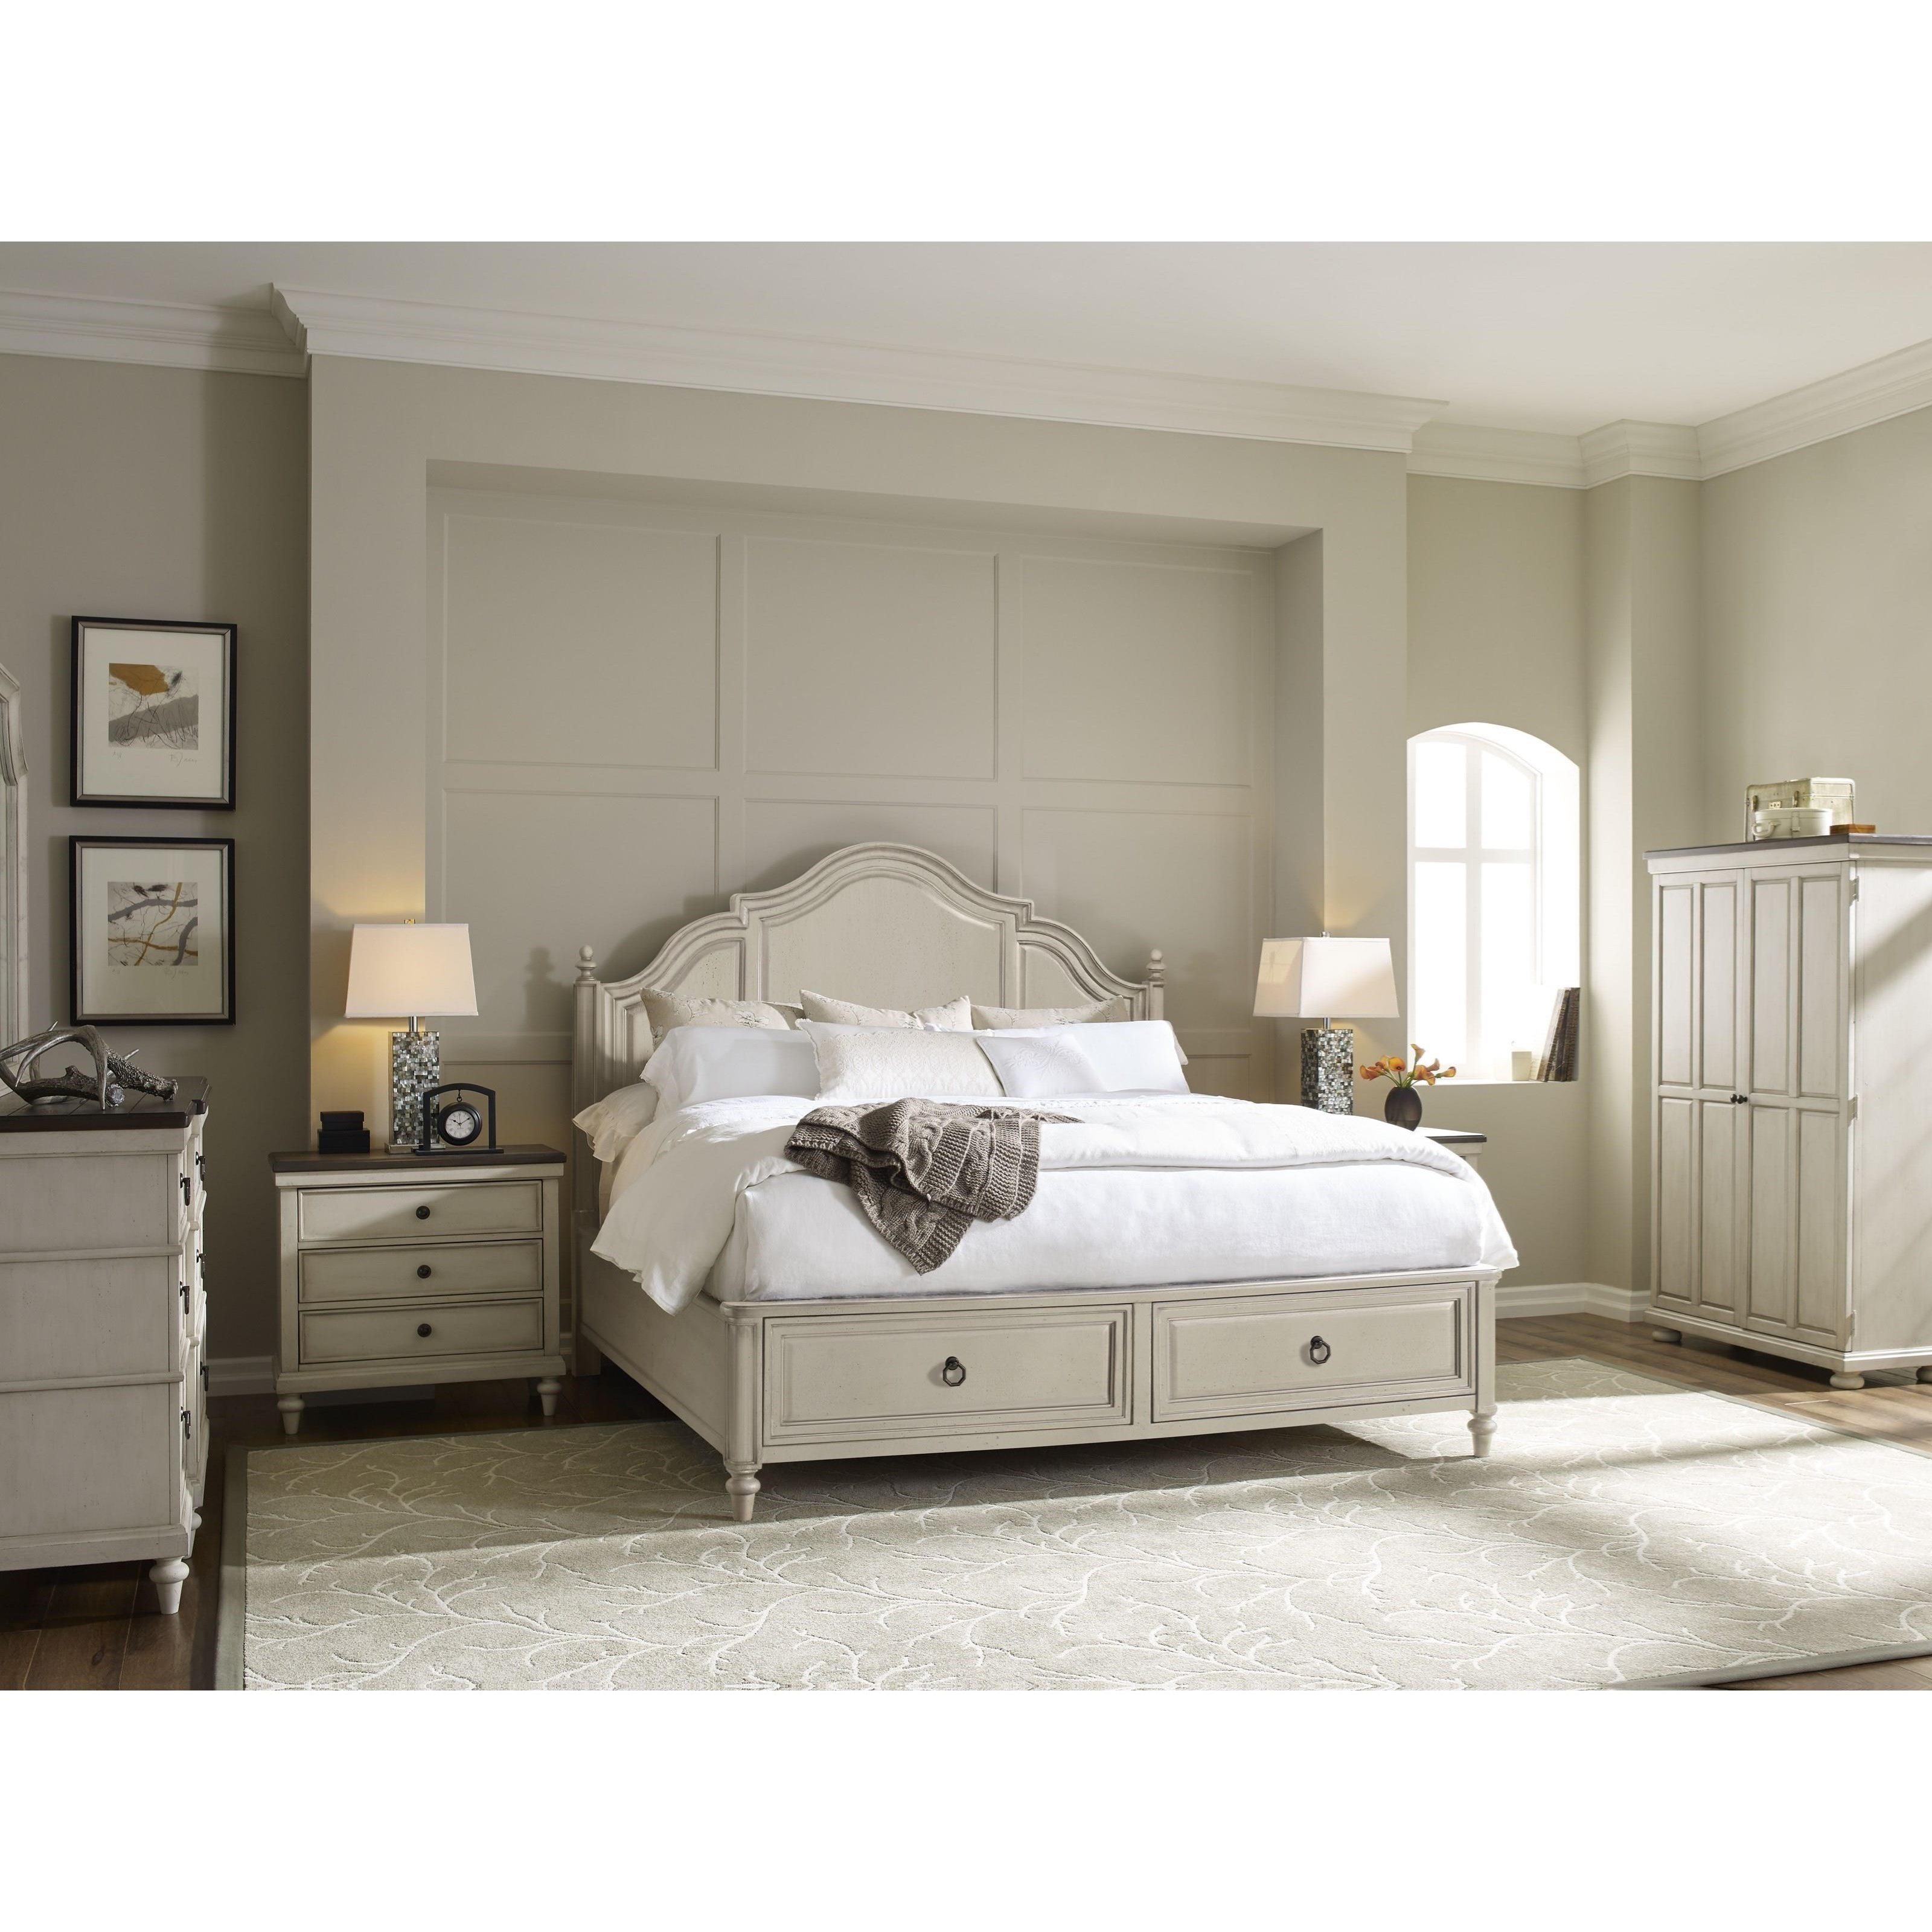 legacy classic brookhaven queen panel bed with 2 storage 12075 | products 2flegacy classic 2fcolor 2fbrookhaven 892579080 6401 4125k b2